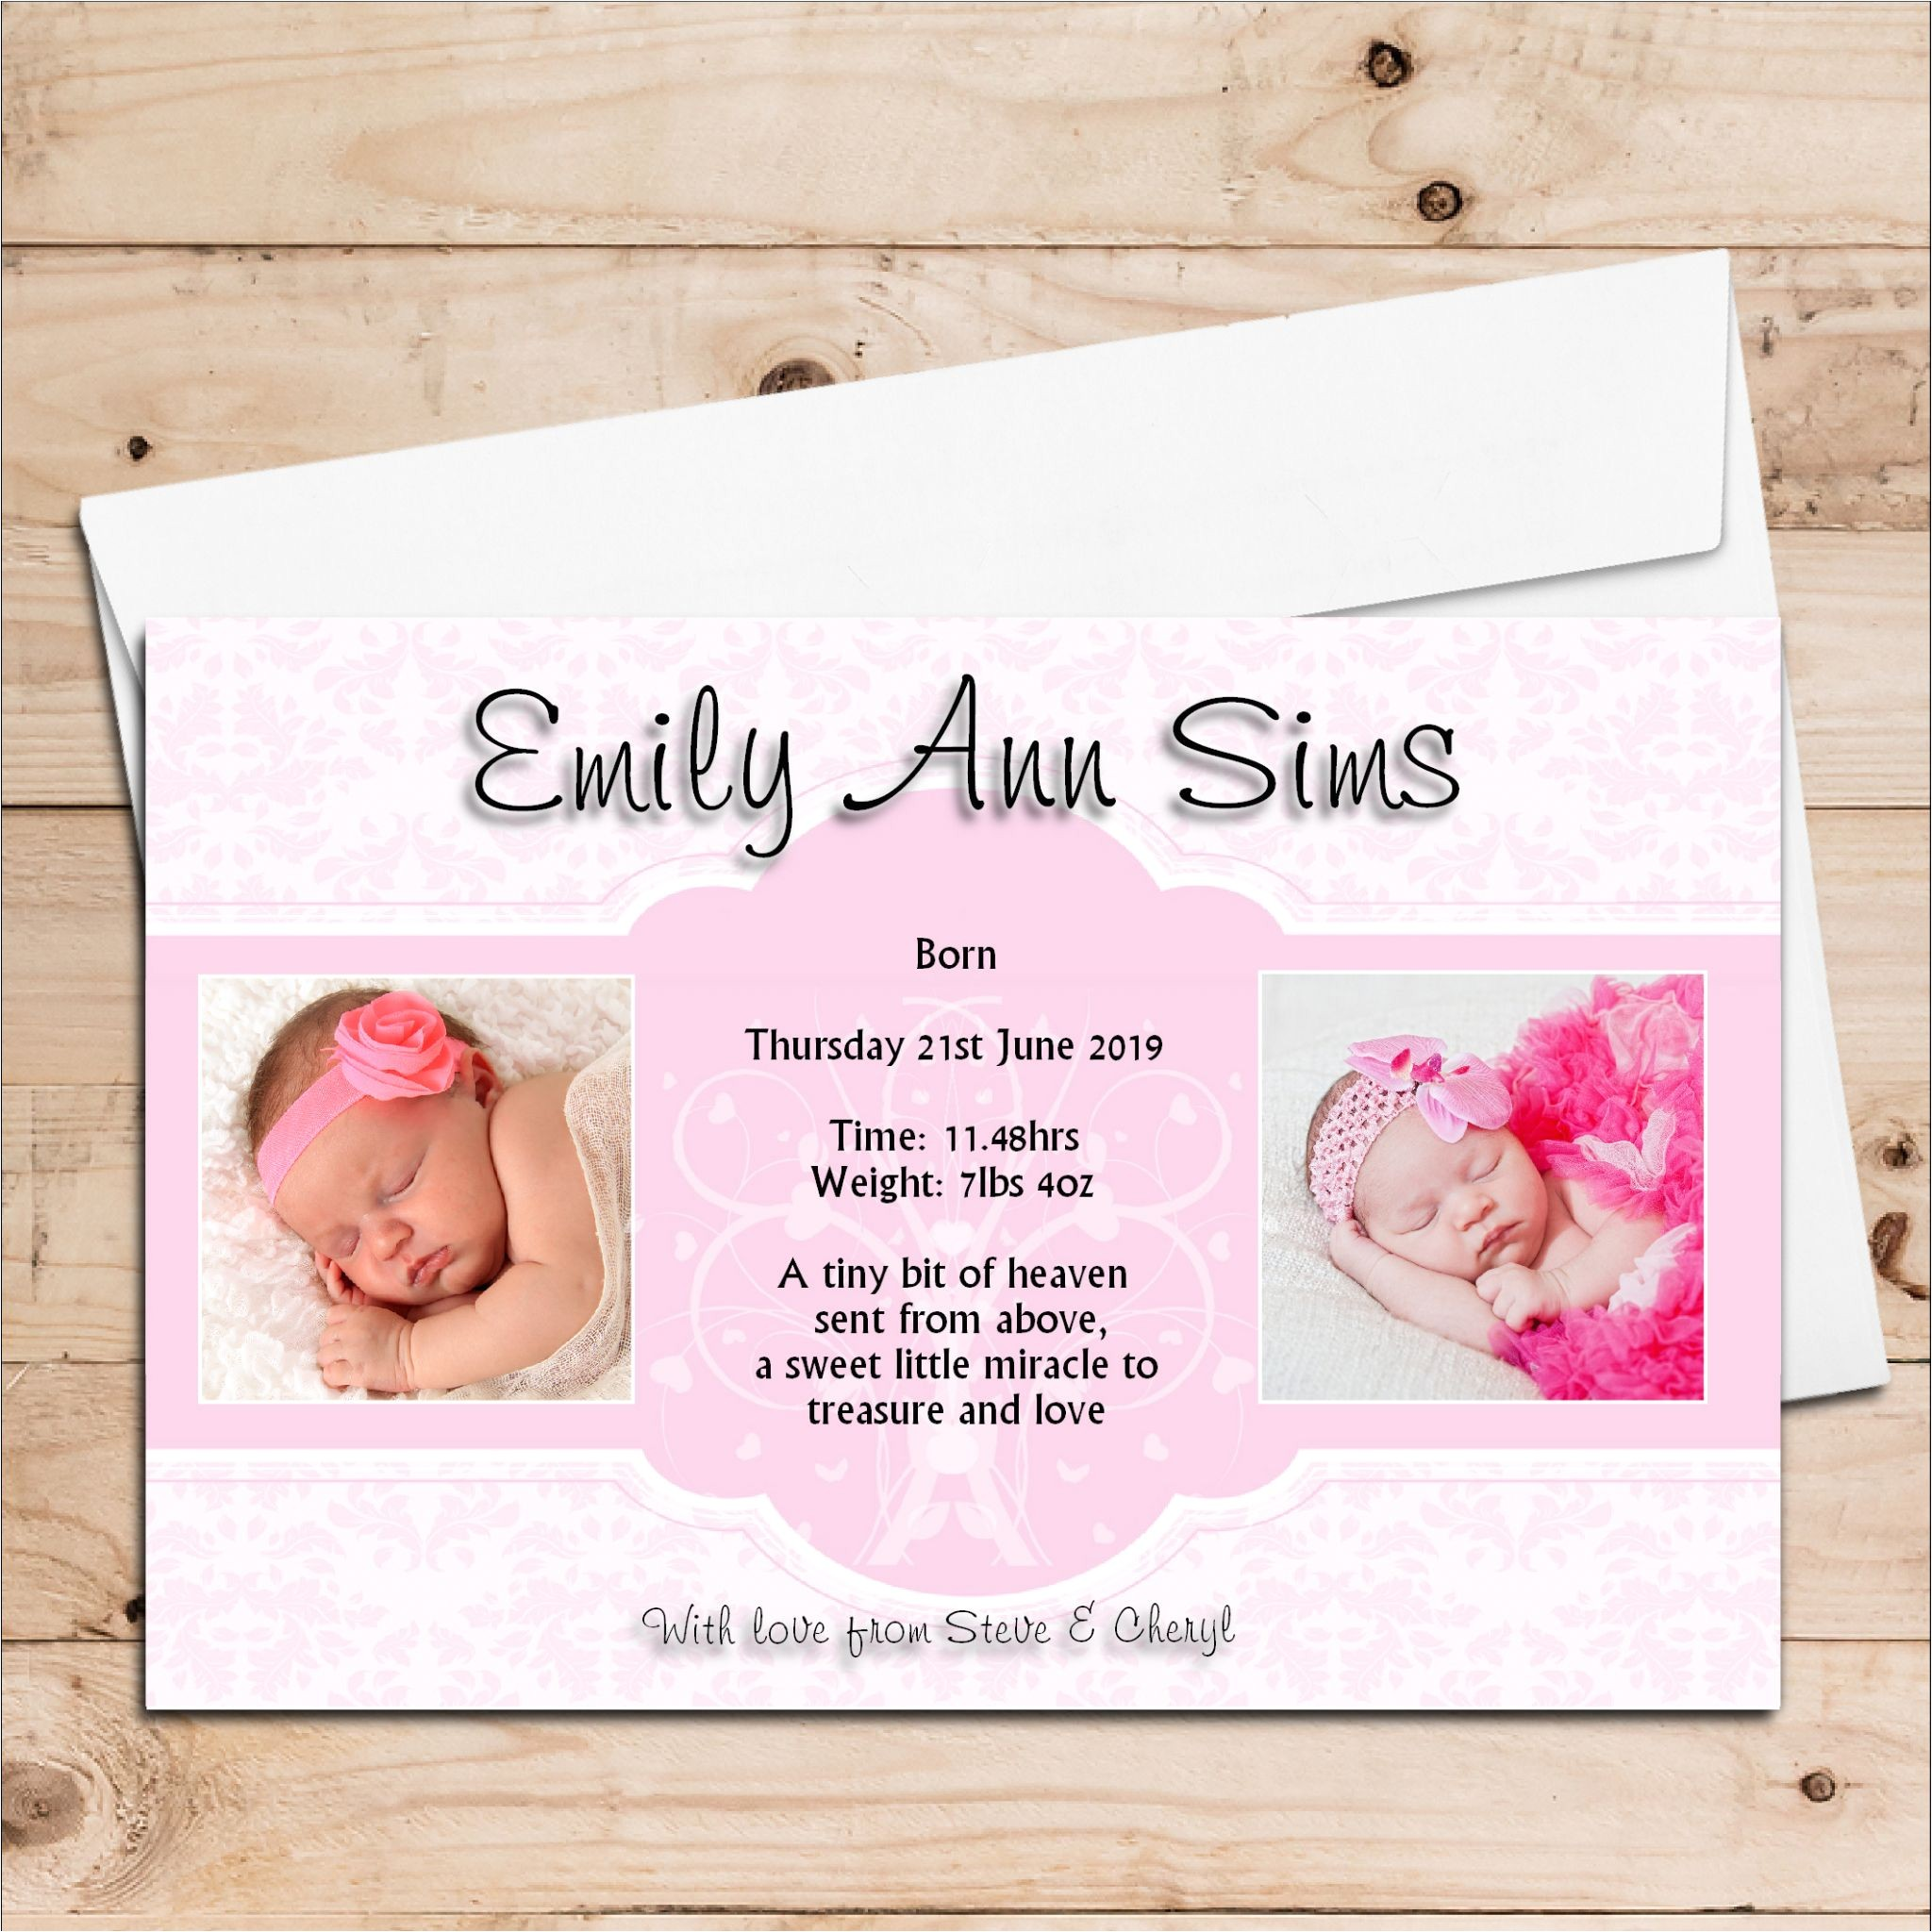 10 personalised baby girl birth announcement thank you photo cards n110 5510 p